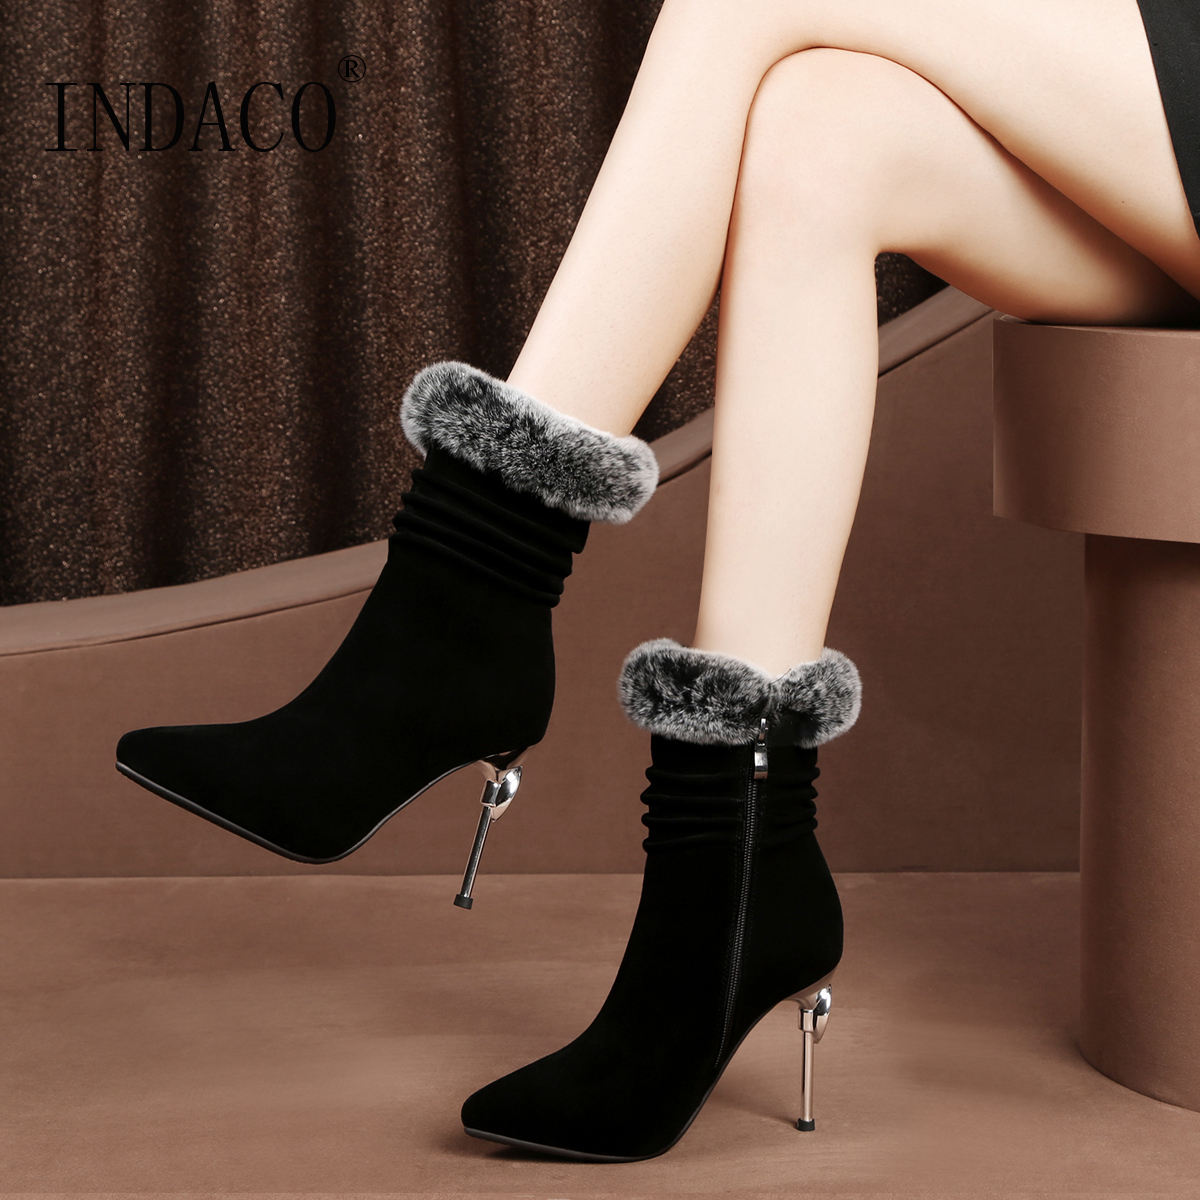 Fur Thigh High Boots Leather 2018 New Fashion High Heel Women Winter Boots Botas Mujer Invierno